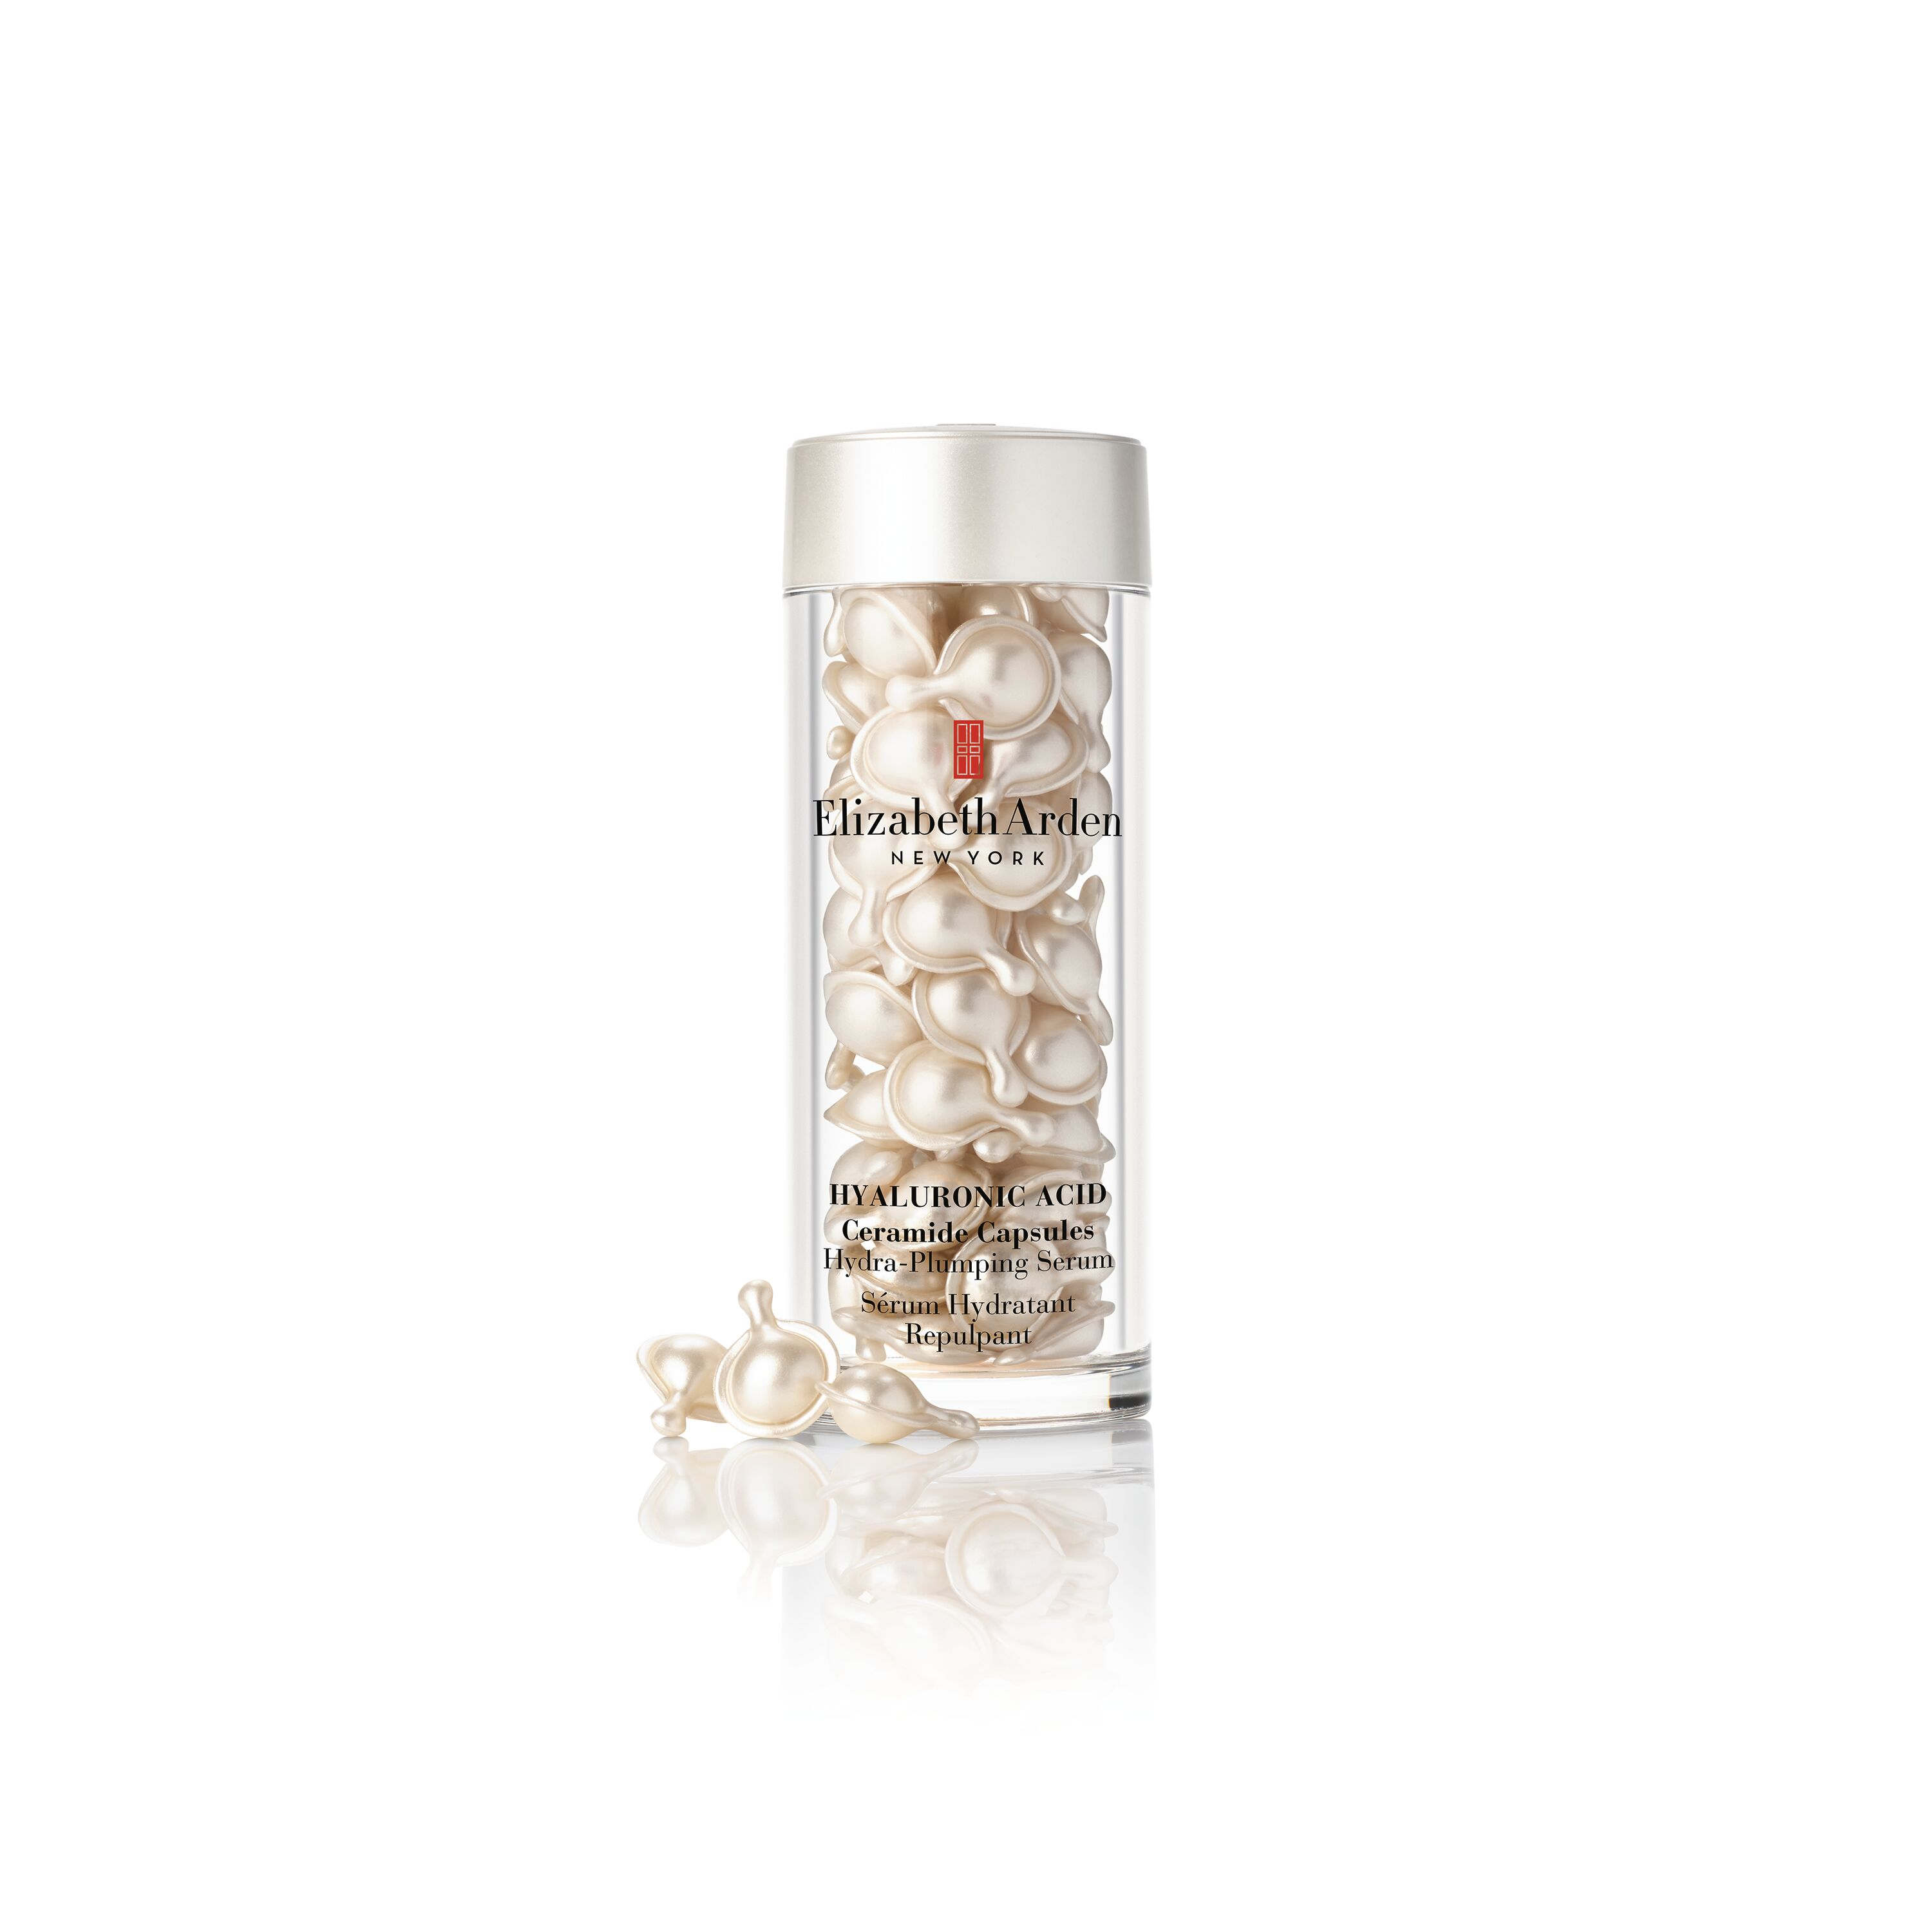 Our Ultimate Last Minute Christmas GiftElizabeth Arden Hyaluronic Acid Capsules for 60, £75.00. Guide |